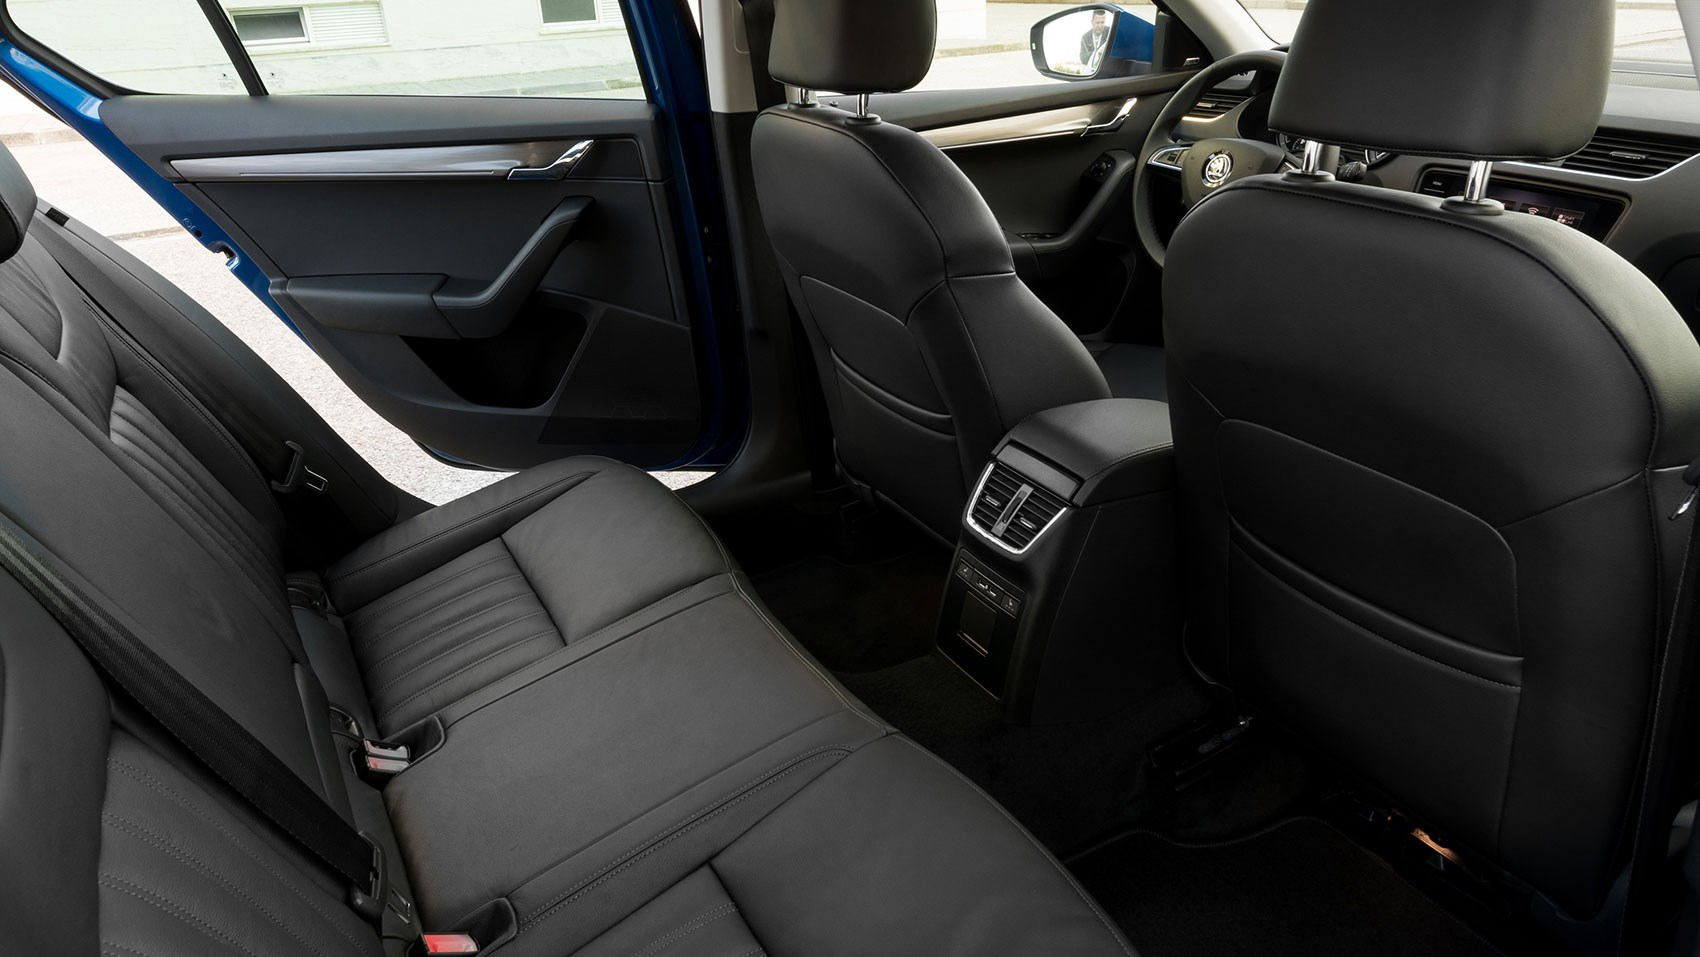 Rear seats of Skoda Octavia